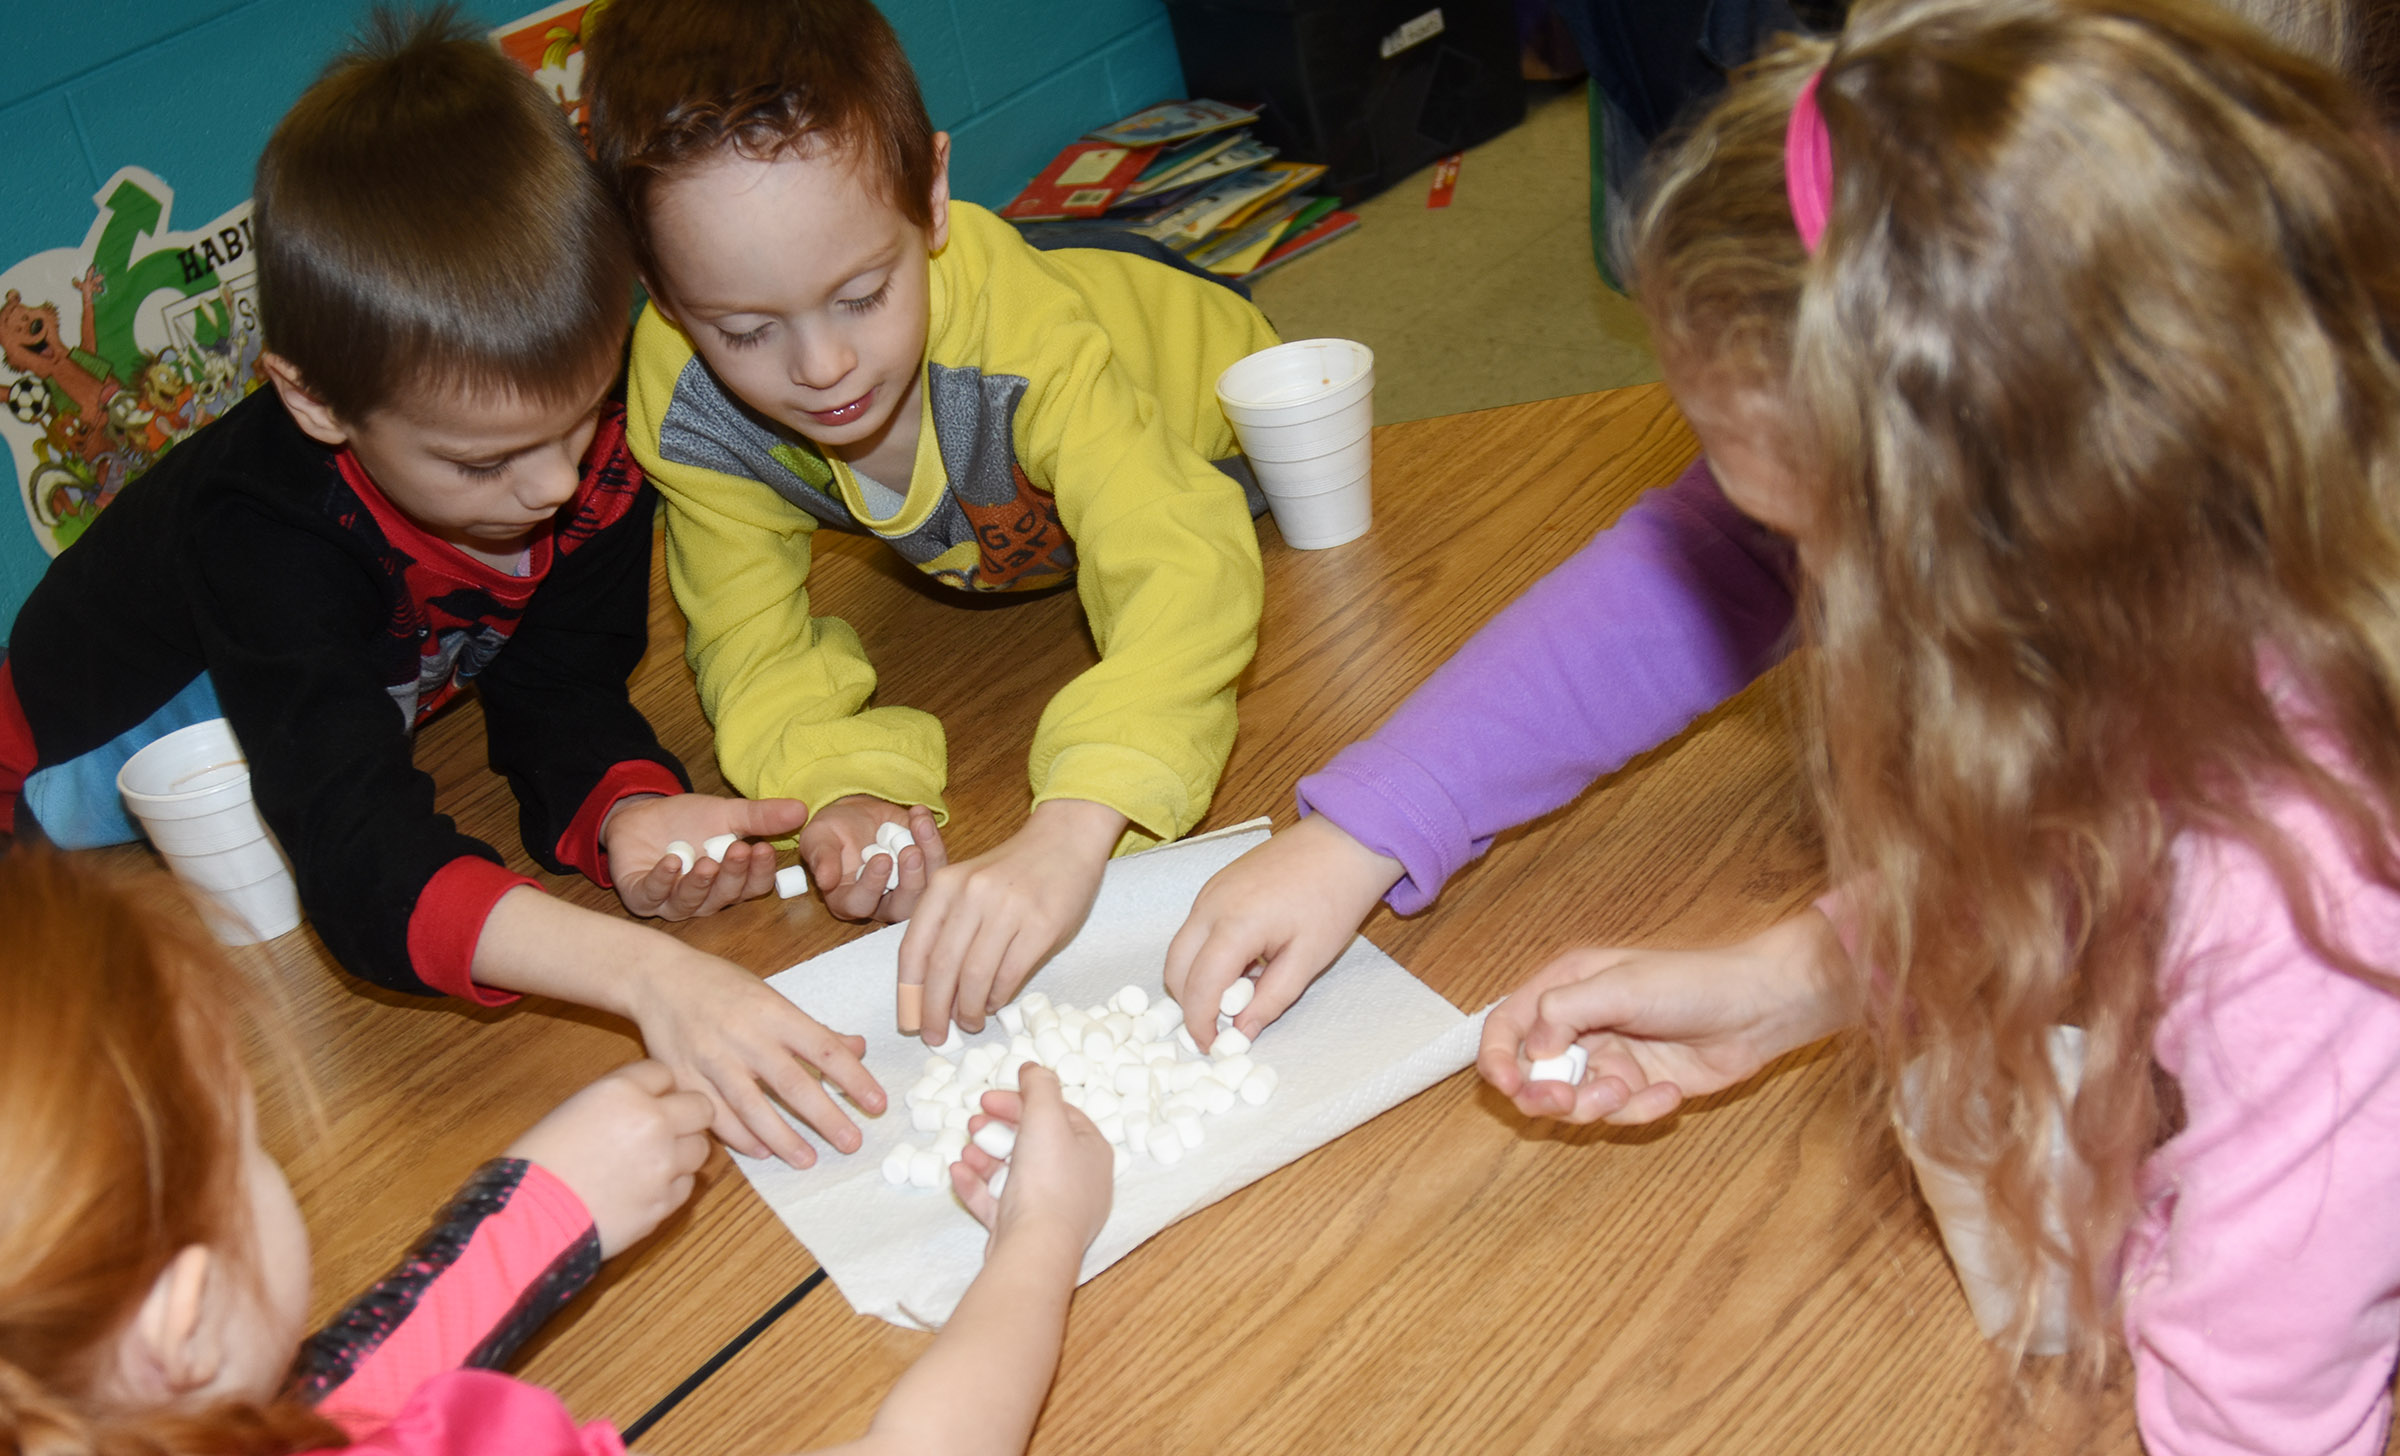 CES first-graders Alex Eggers, at left, and Carson Montes and their classmates add marshmallows to their hot chocolate.